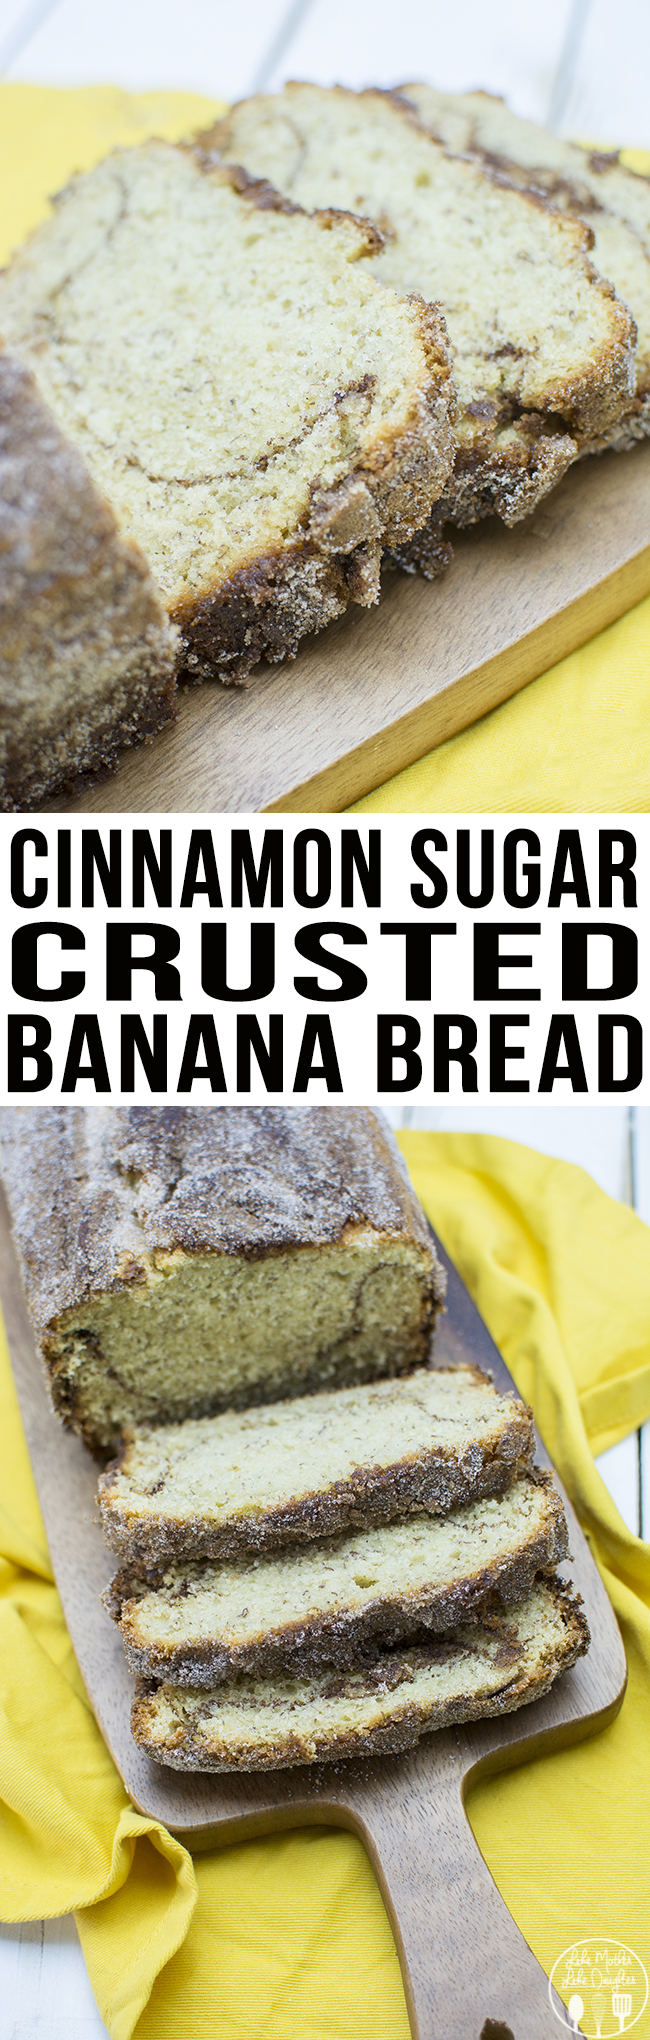 Cinnamon Sugar Crusted Banana Bread - This delicious banana bread has a great cinnamon swirl in the middle and is crusted with a crunchy flavorful cinnamon sugar crust for the perfect twist on banana bread!